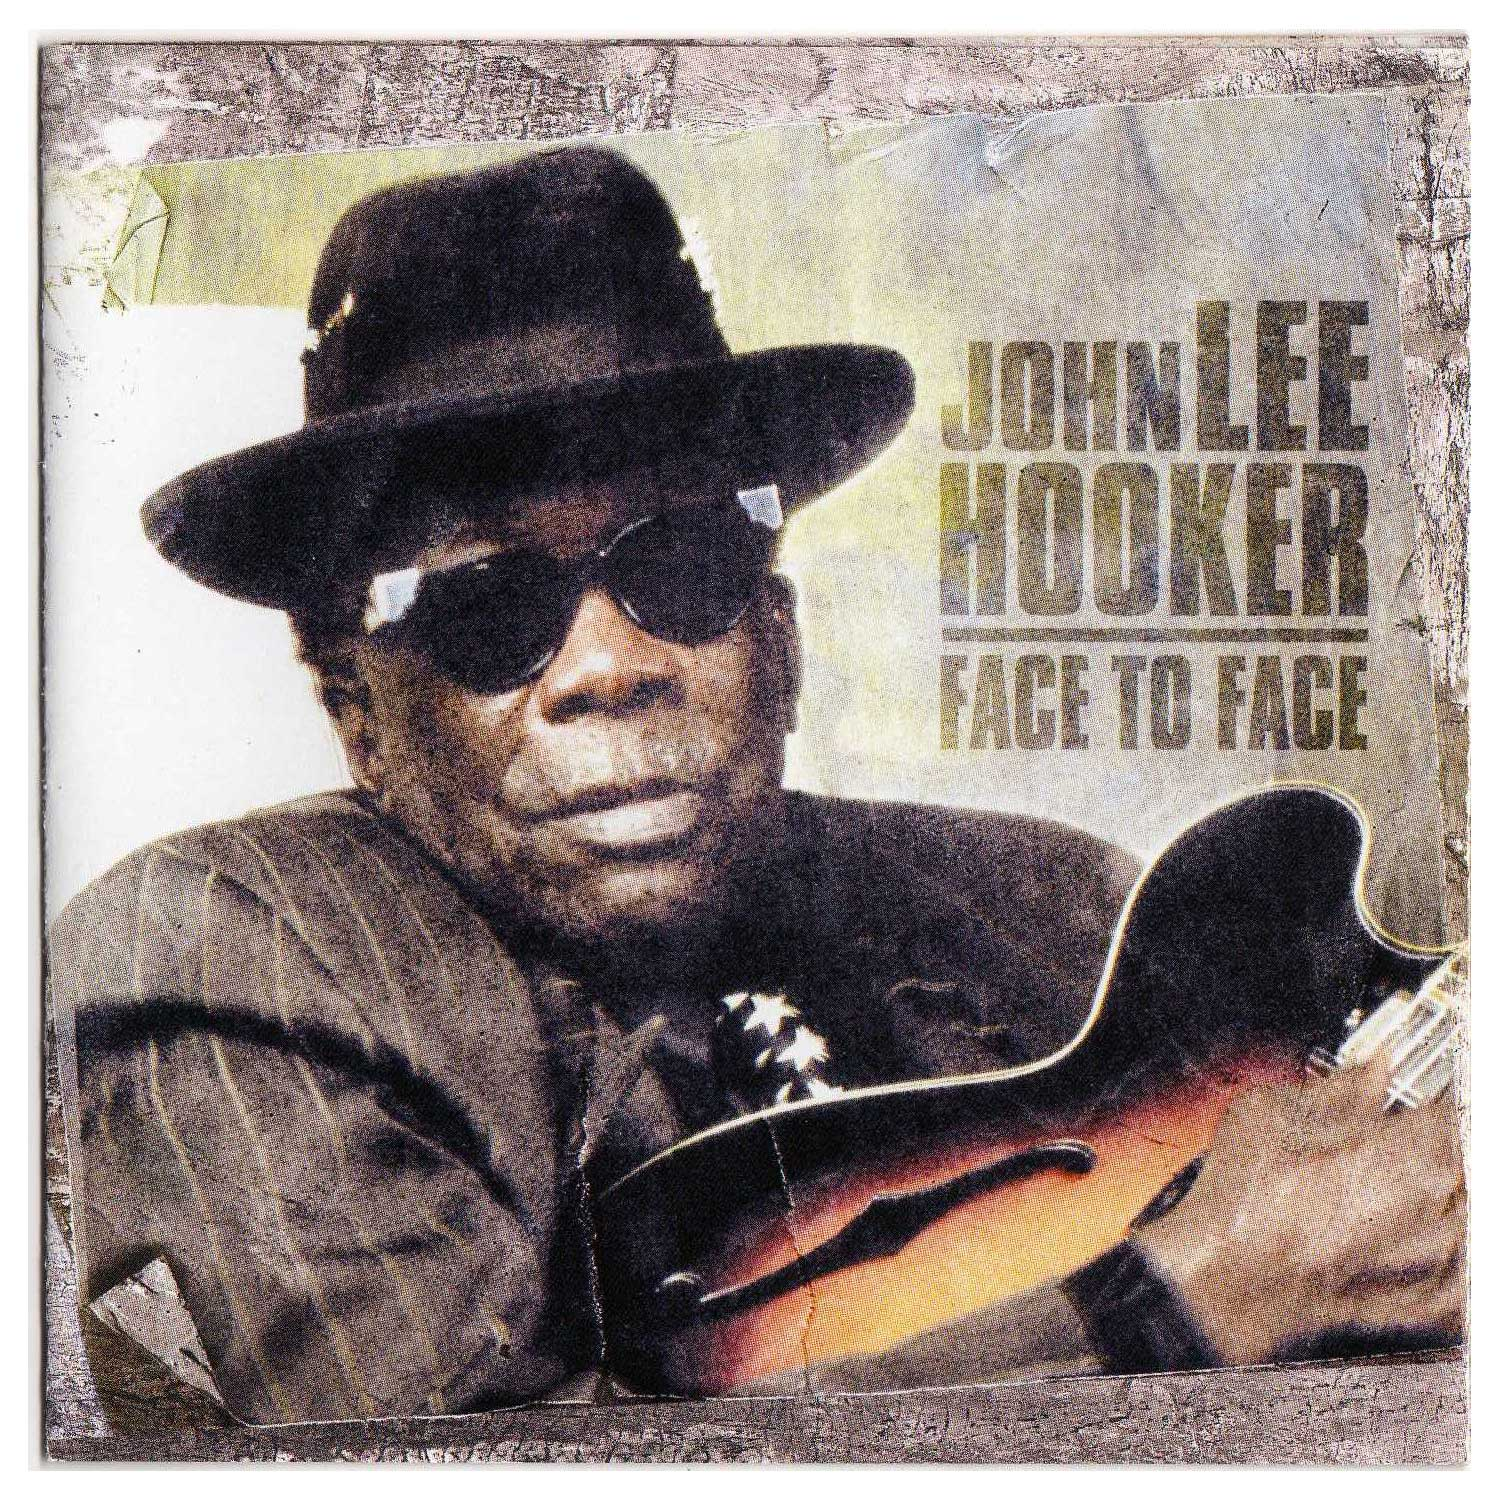 John Lee Hooker Face To Face